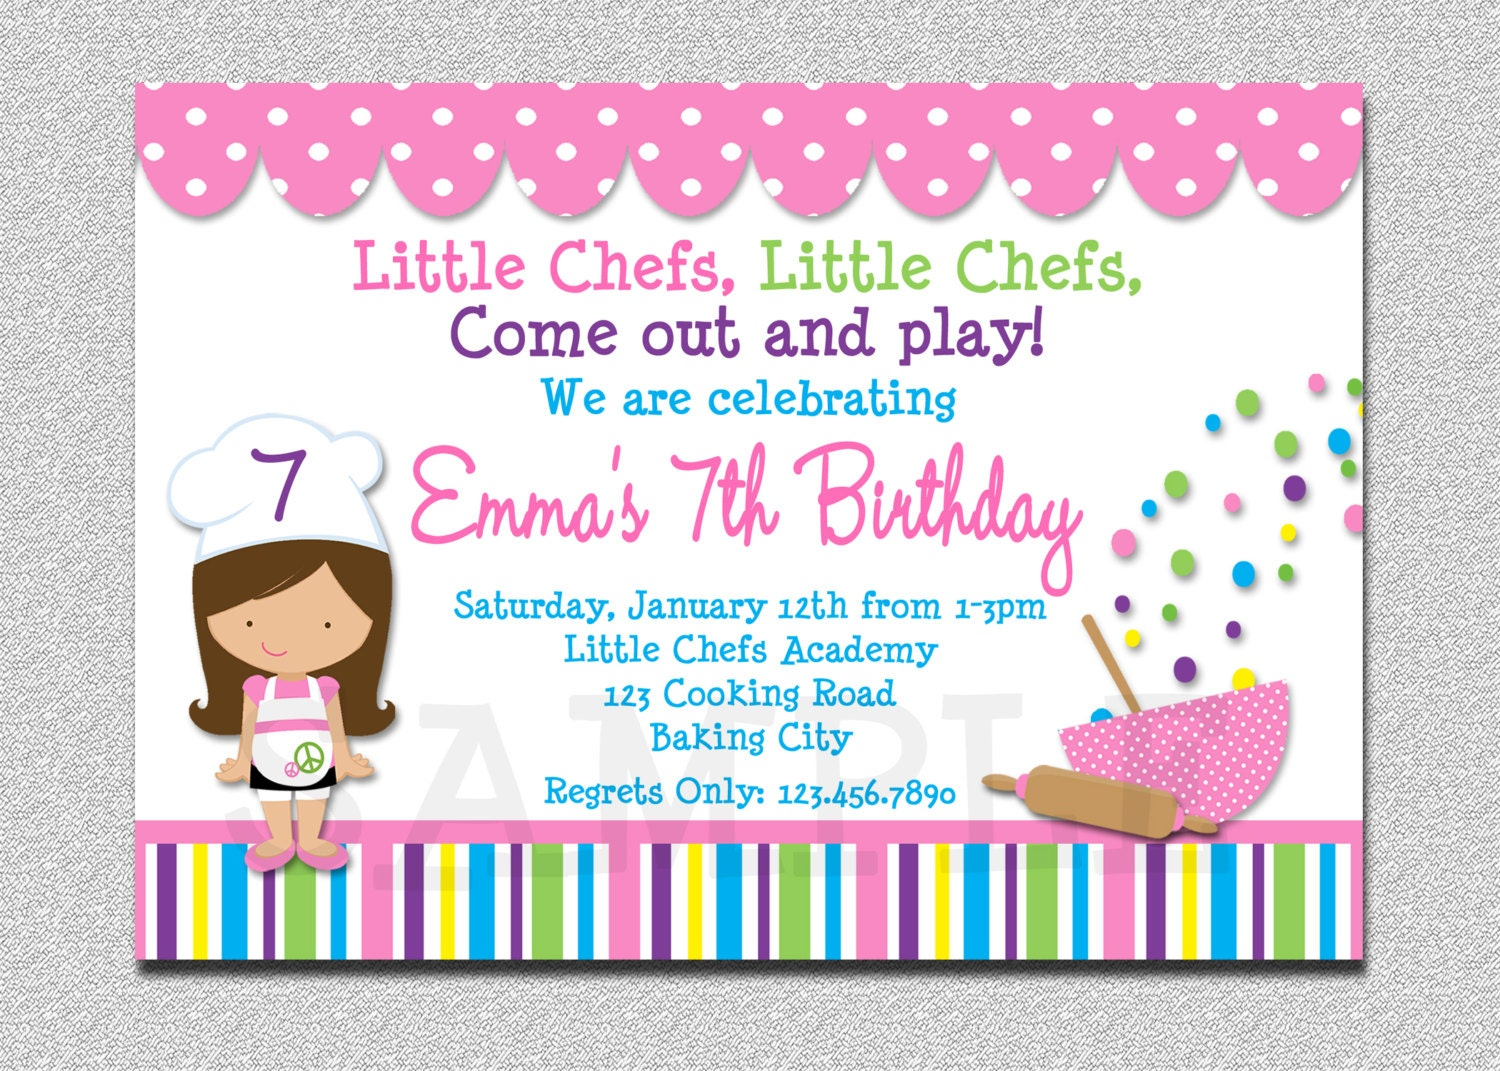 Electronic Party Invitation is nice invitations layout